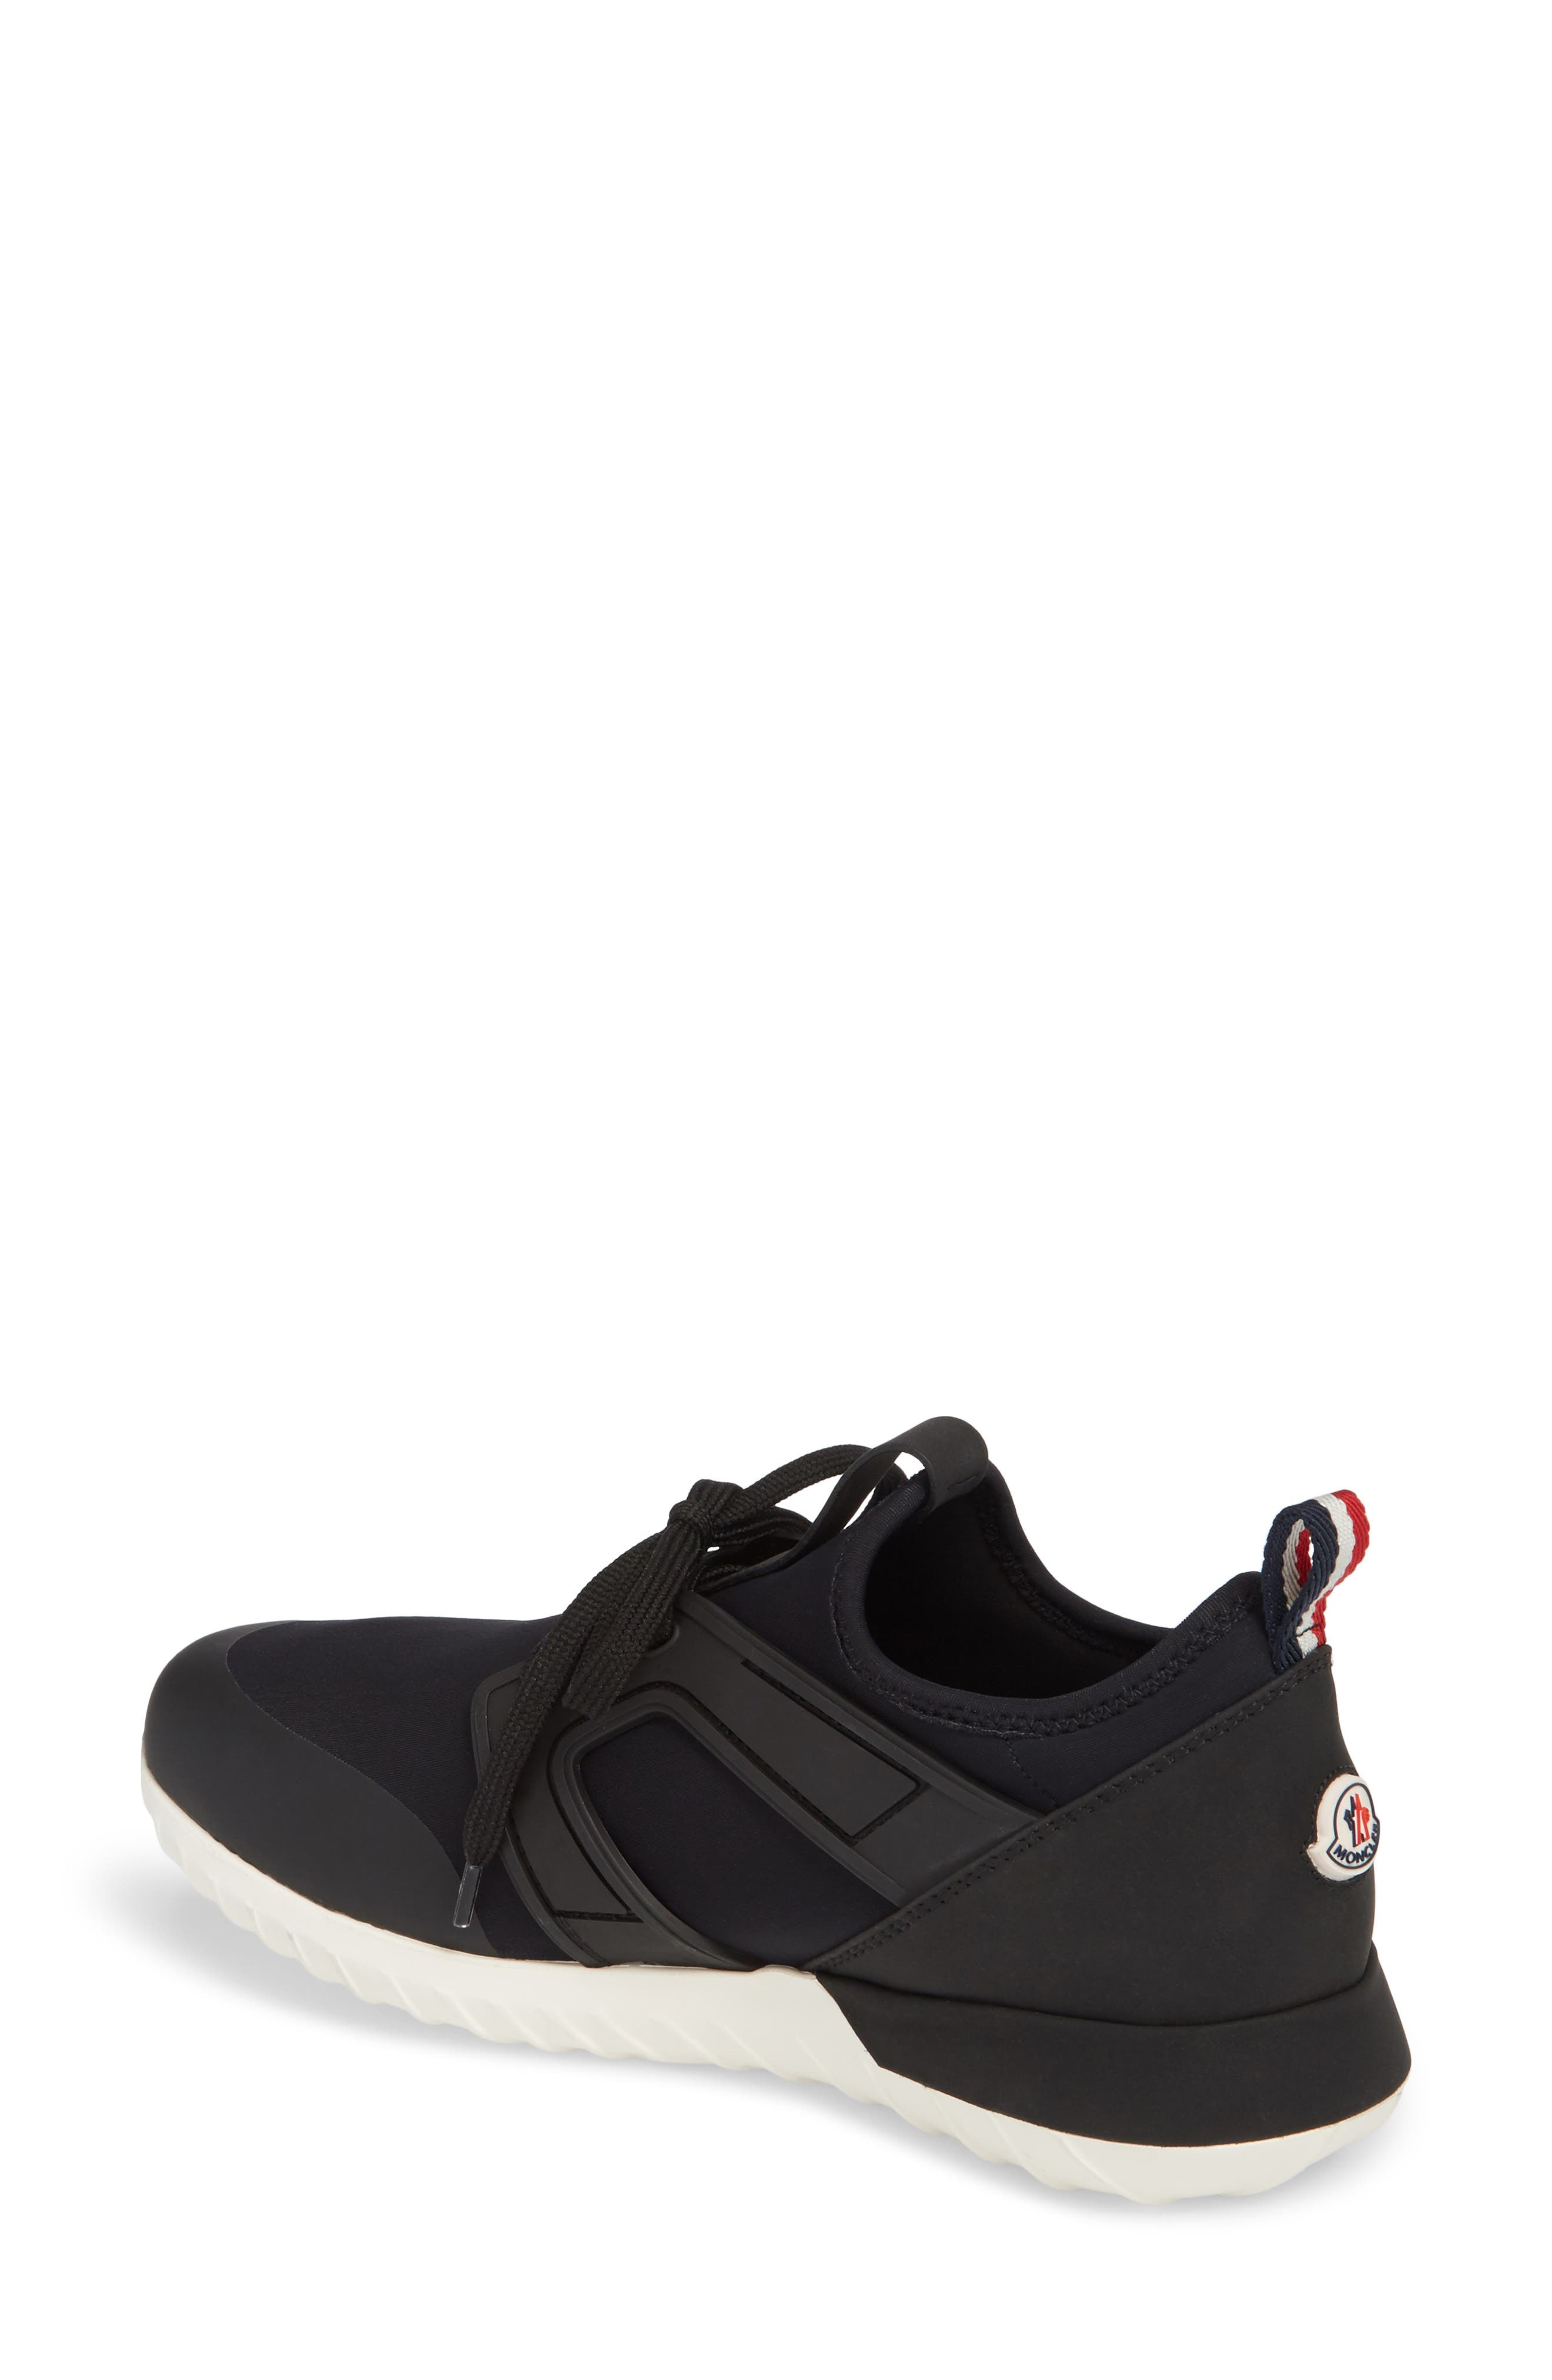 Meline Lace-Up Sneaker,                             Alternate thumbnail 2, color,                             Black